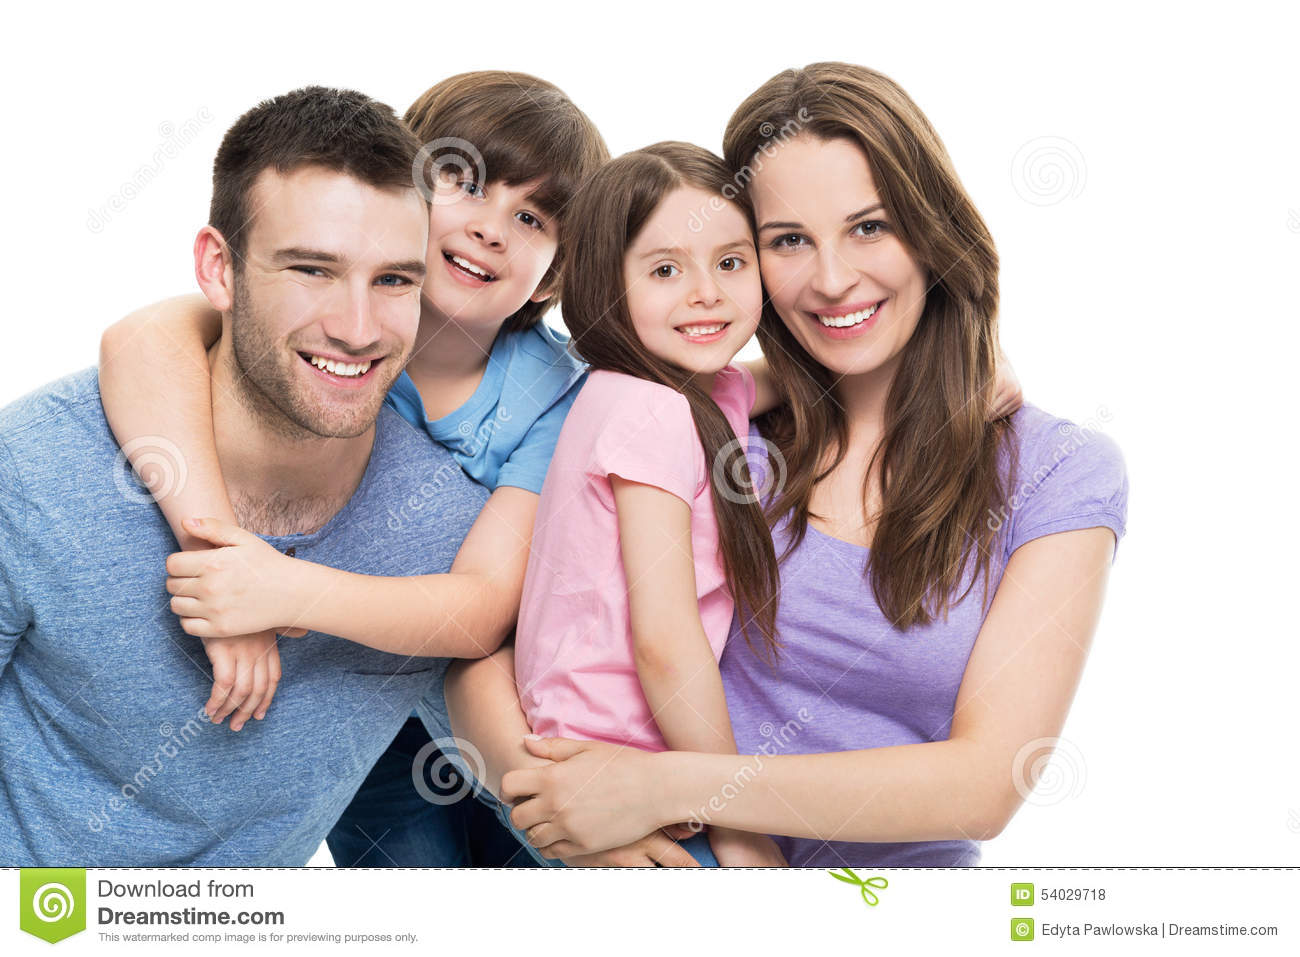 essay youngest child family In our joint family there are several children and among them, the youngest boy  of my elder sister is the one i'd like to talk about he is 4-5 years.